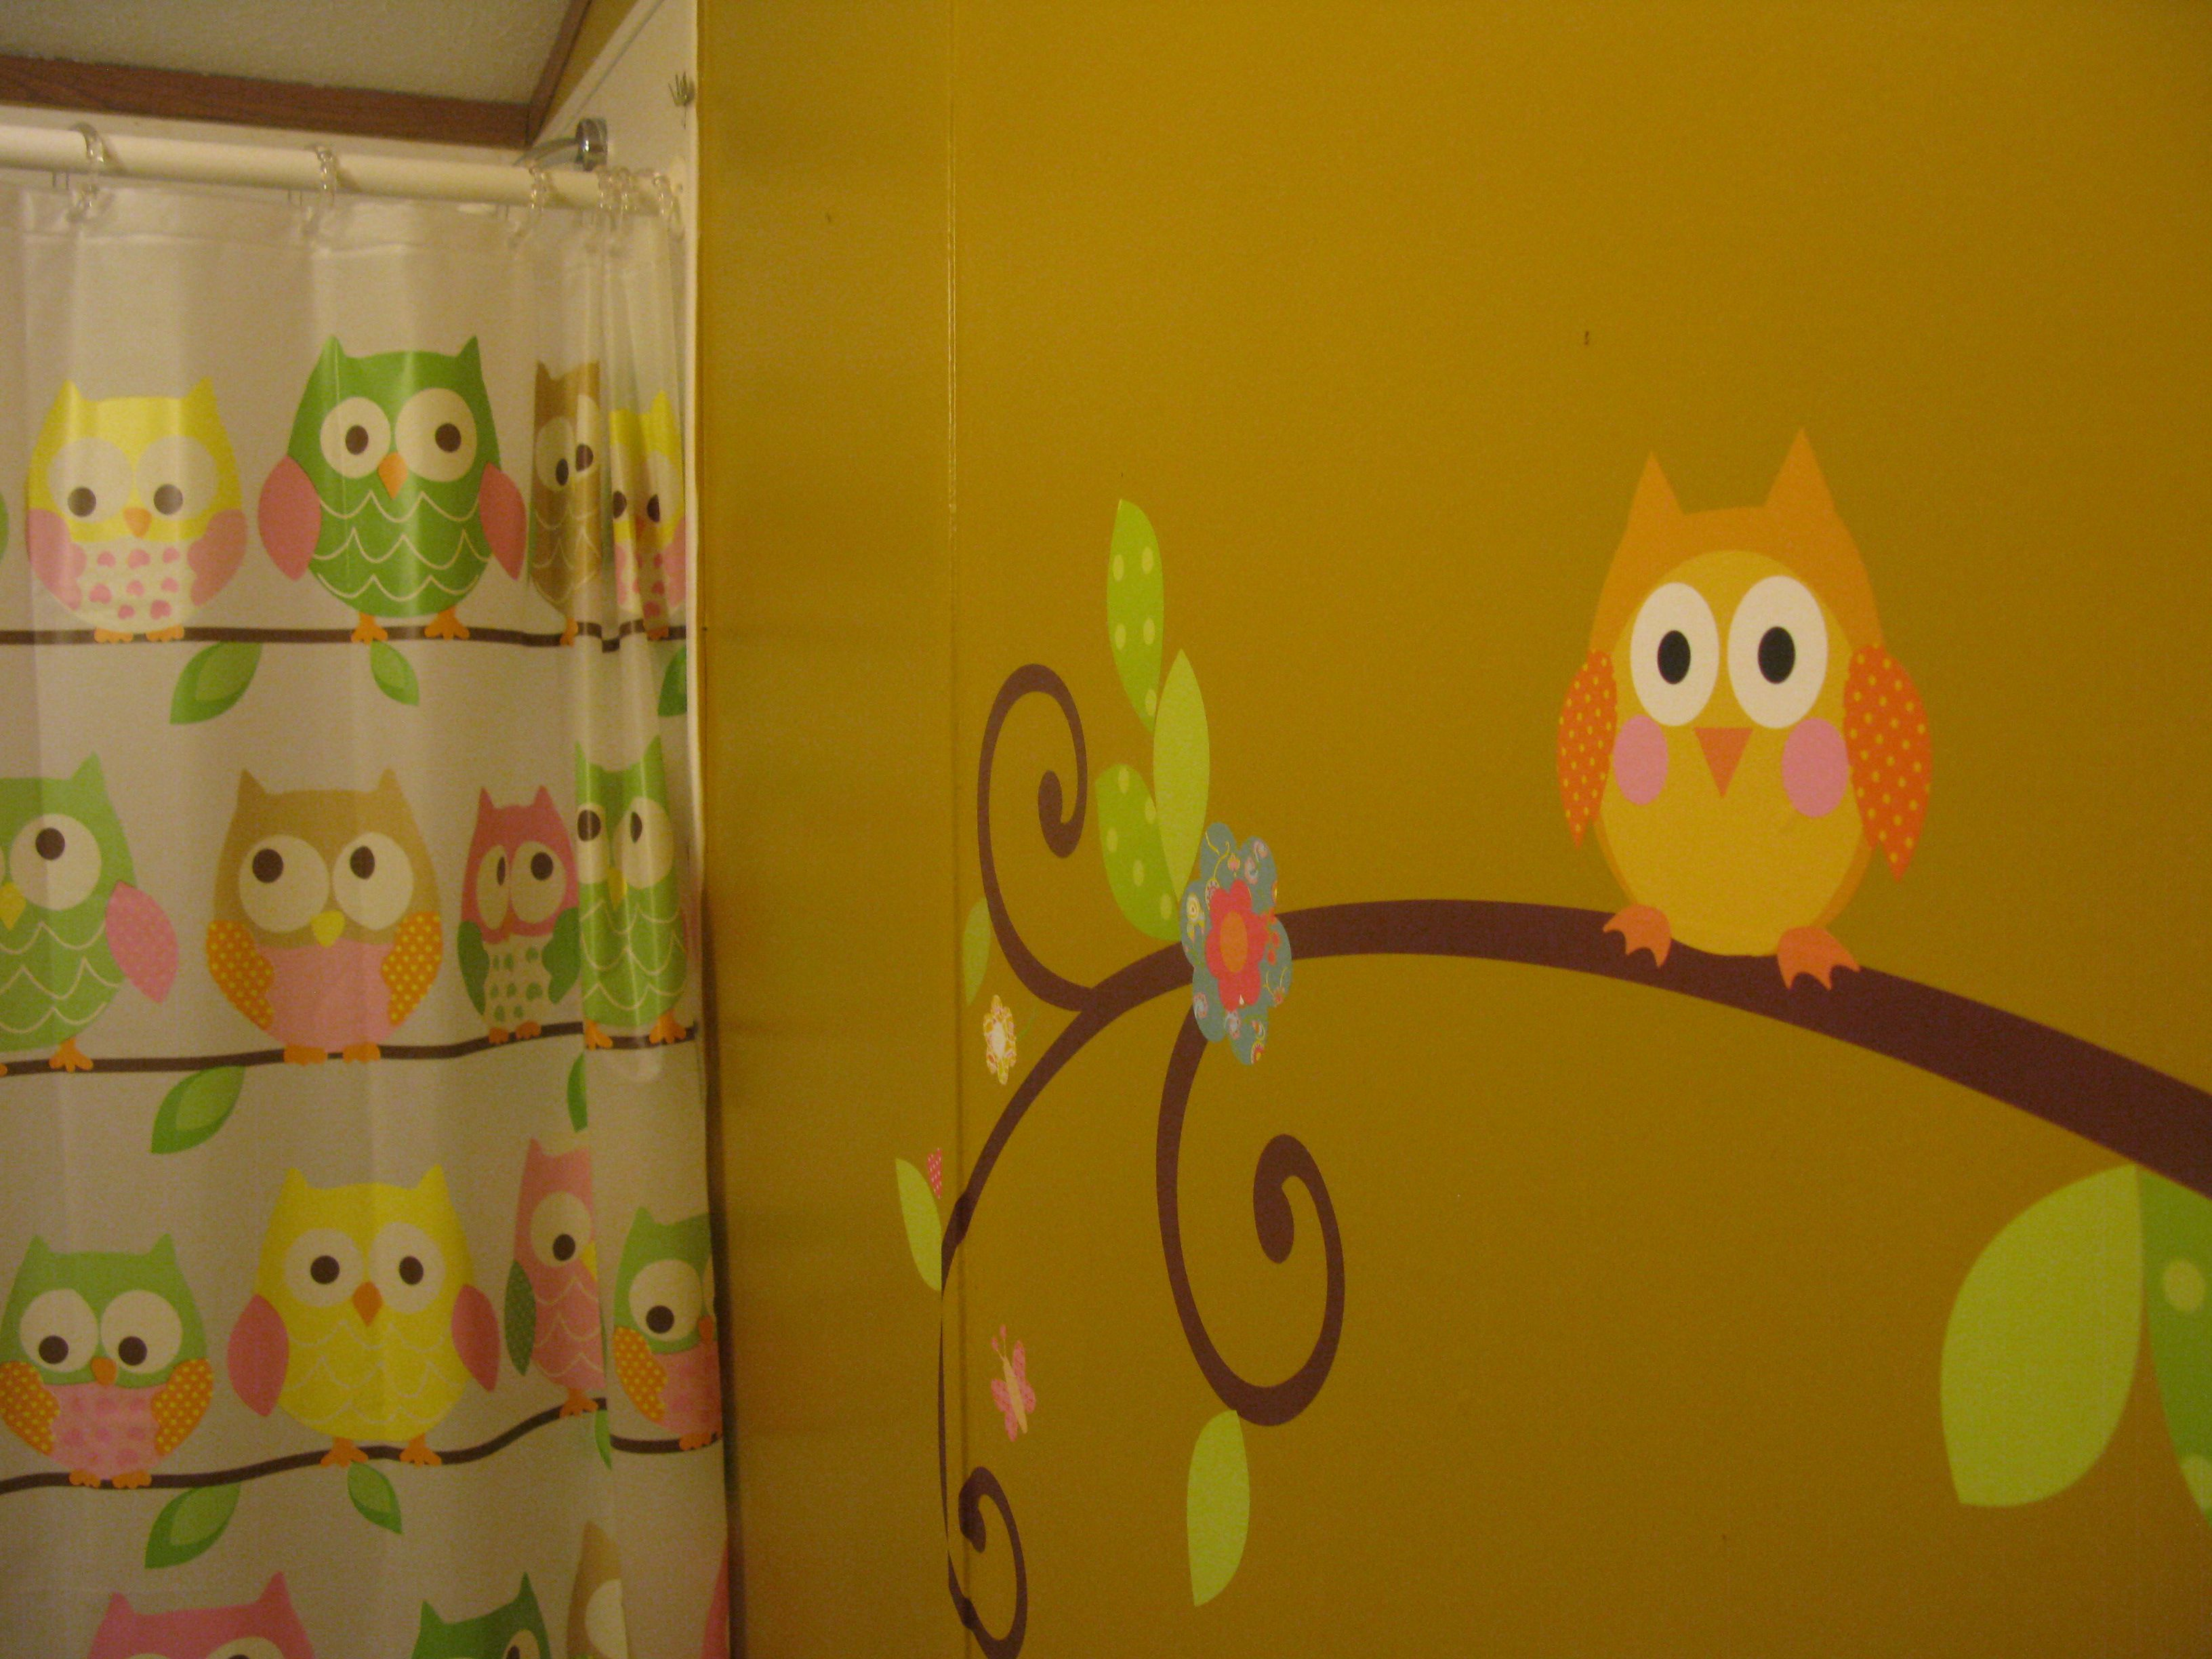 Bathroom owl decor - The Girls Bathroom We Painted A Mustard Yellow Wall With Owl Wall Decals